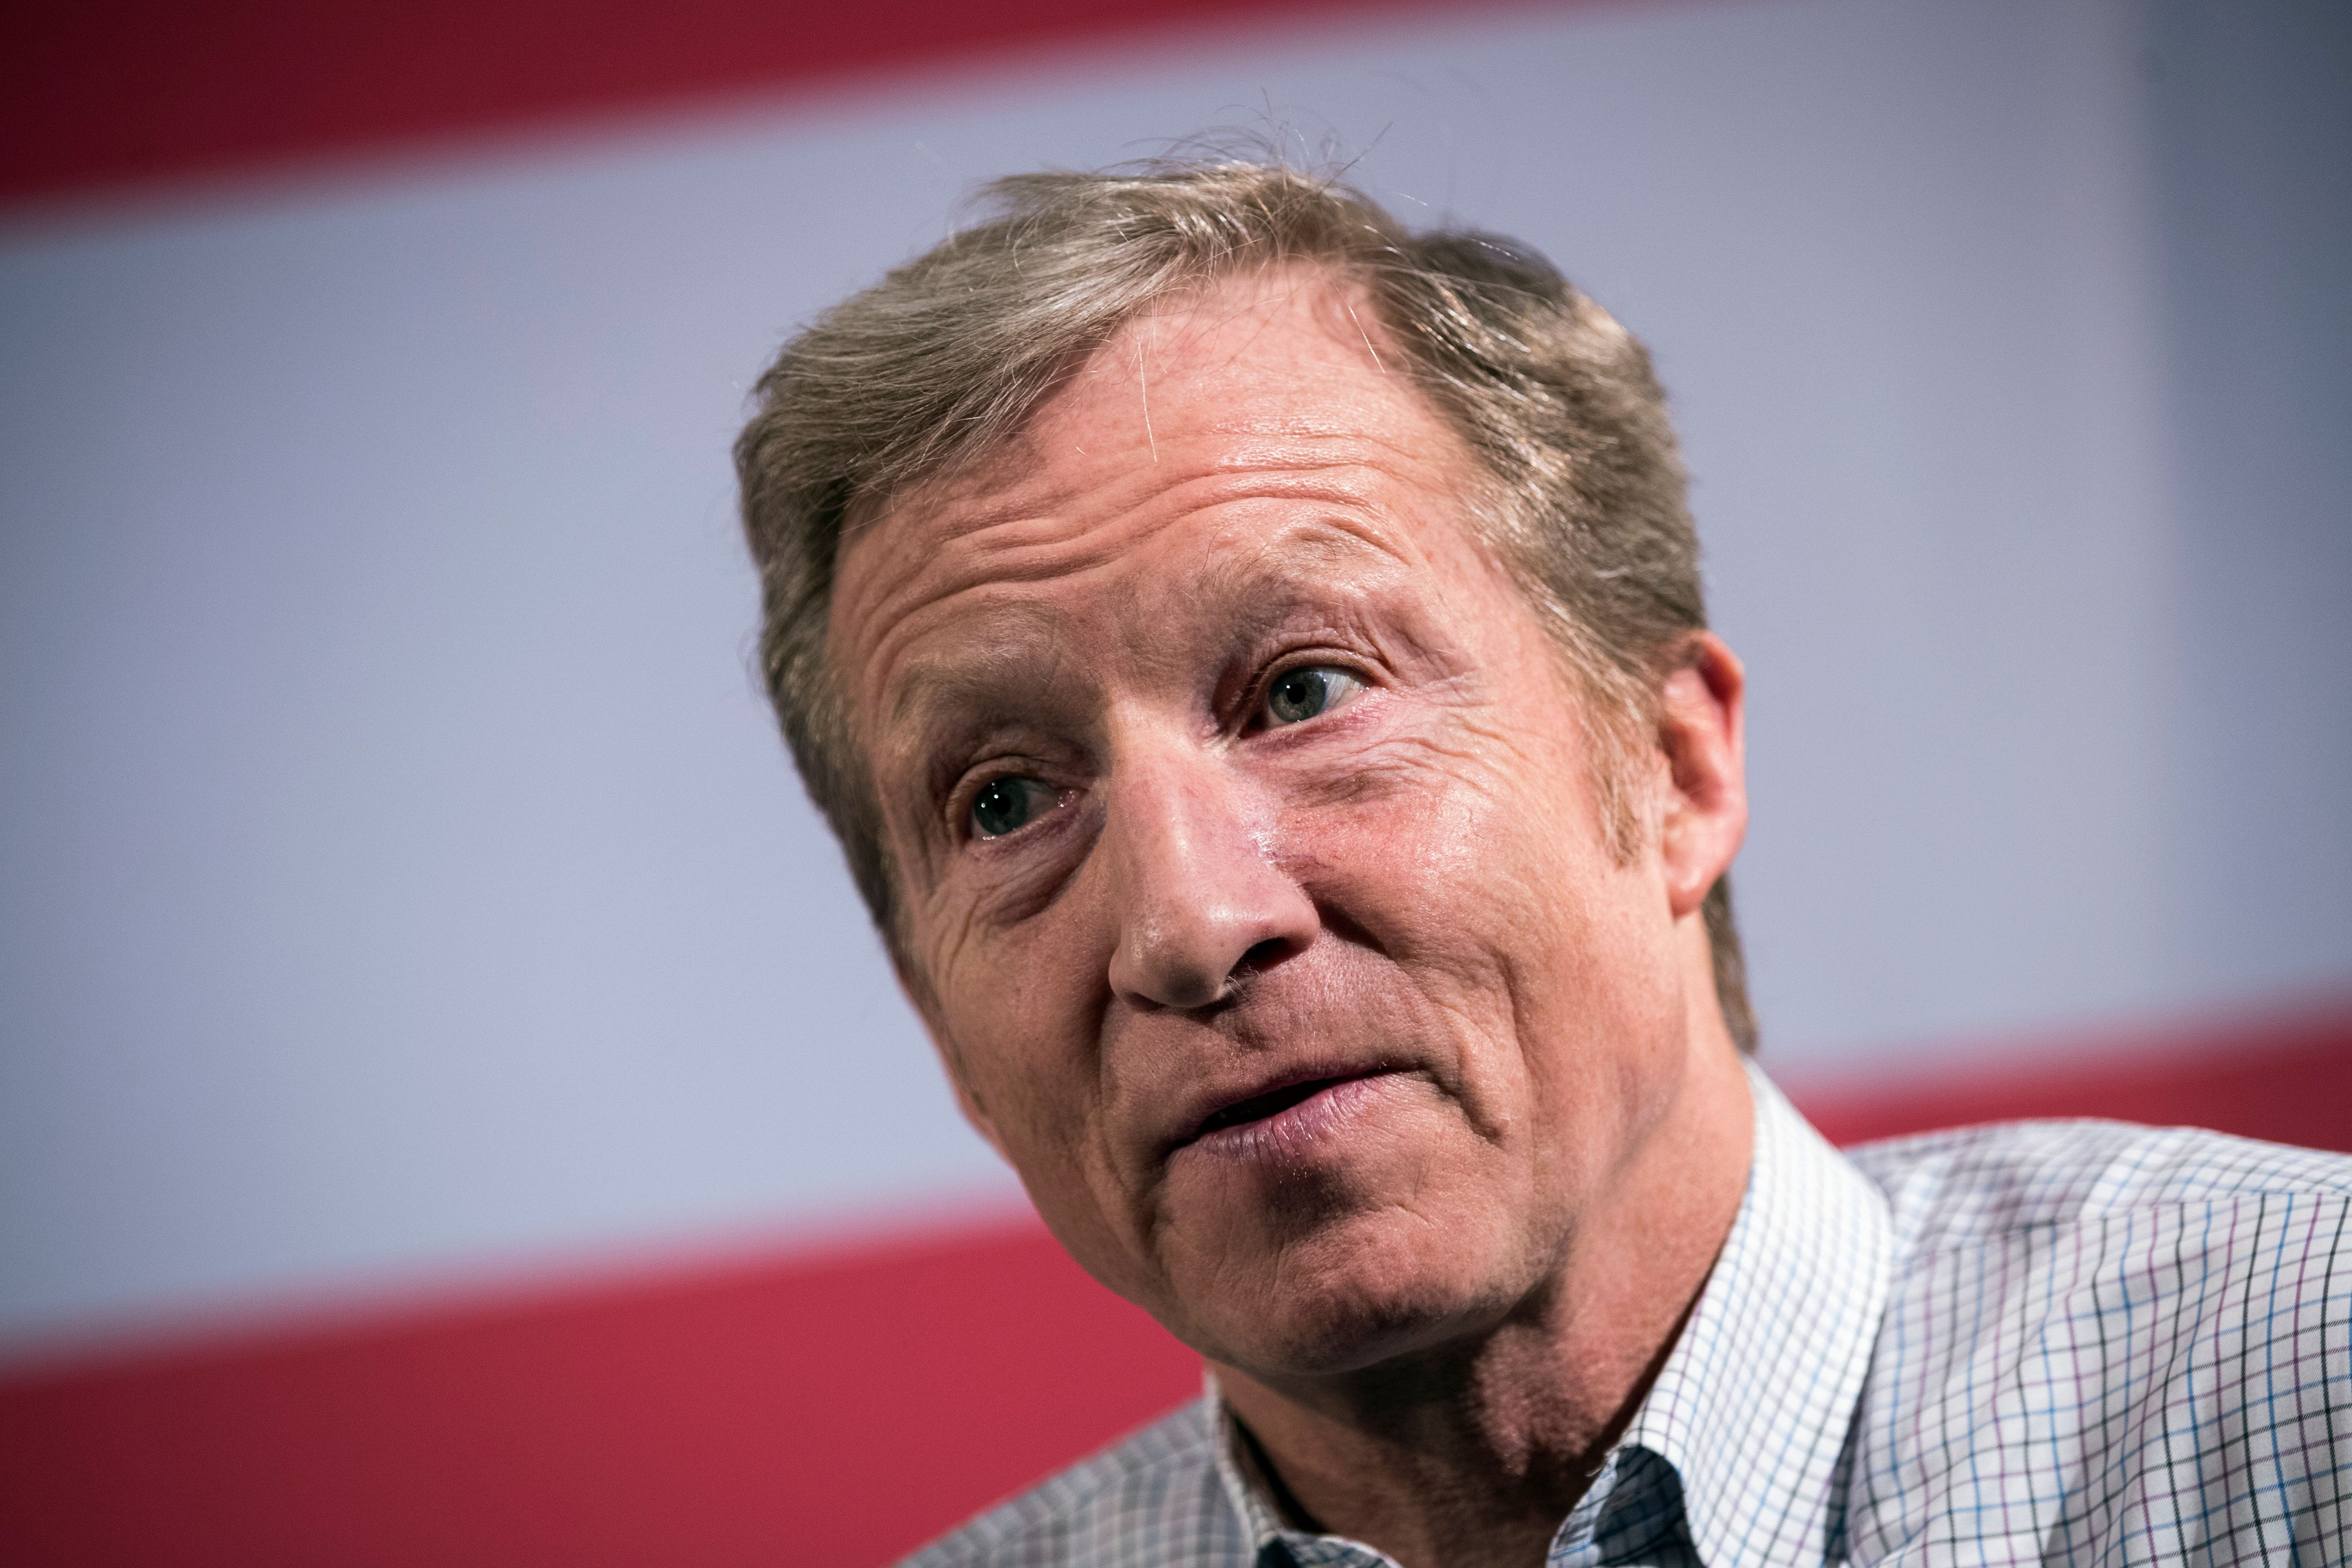 NEW YORK, NY - JANUARY 29: Hedge fund billionaire and Democratic fund-raiser Tom Steyer speaks during a town hall event at the DoubleTree Suites by Hilton hotel in Times Square January 29, 2018 in New York City. Steyer is the founder of the Need To Impeach initiative and is the largest individual donor in Democratic politics. (Photo by Drew Angerer/Getty Images)